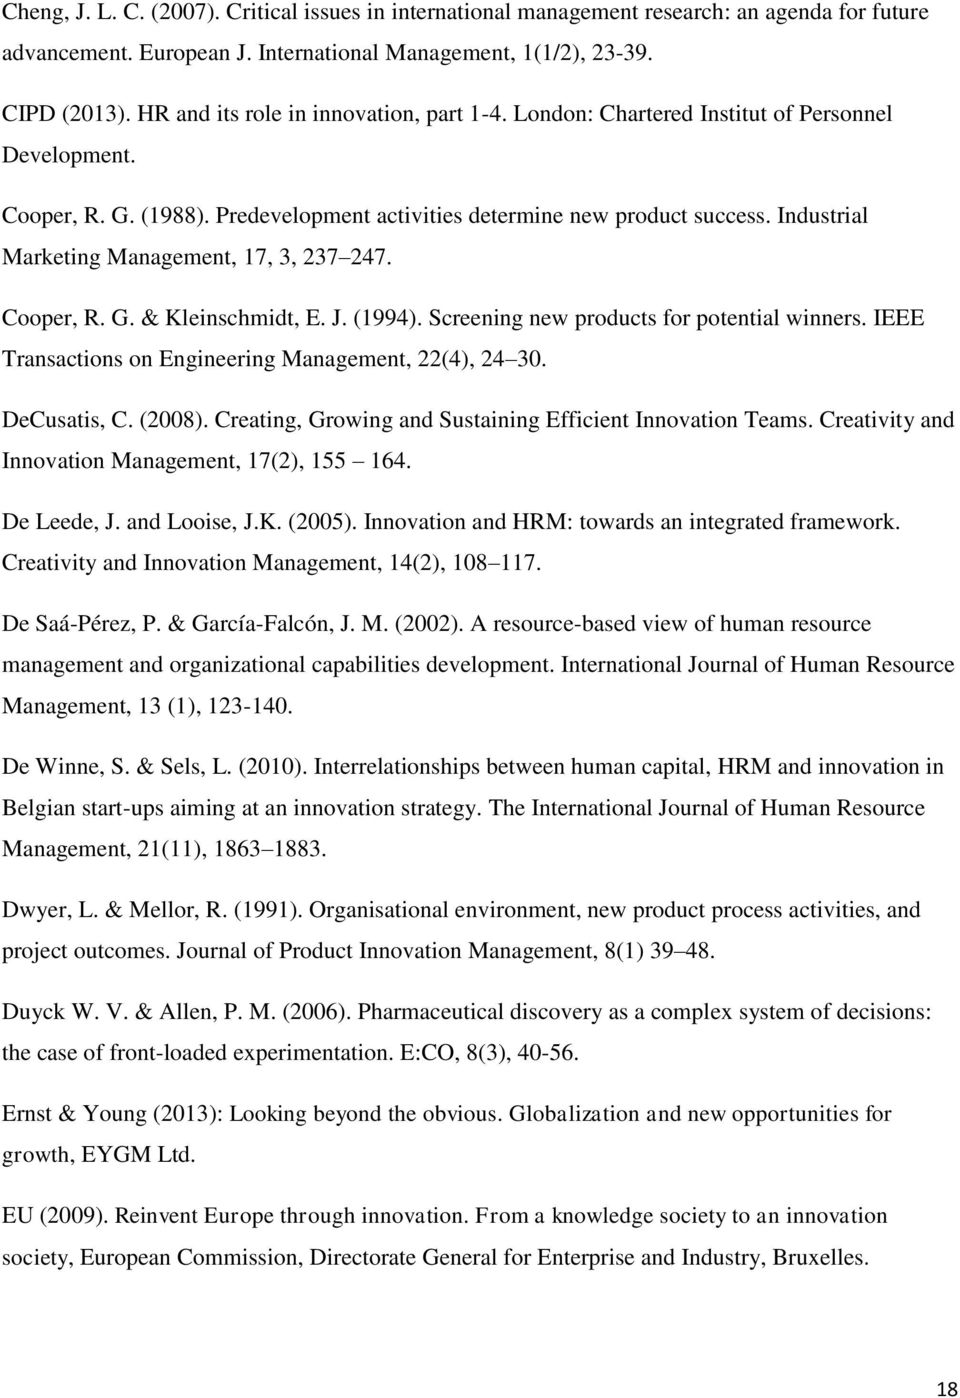 Industrial Marketing Management, 17, 3, 237 247. Cooper, R. G. & Kleinschmidt, E. J. (1994). Screening new products for potential winners. IEEE Transactions on Engineering Management, 22(4), 24 30.